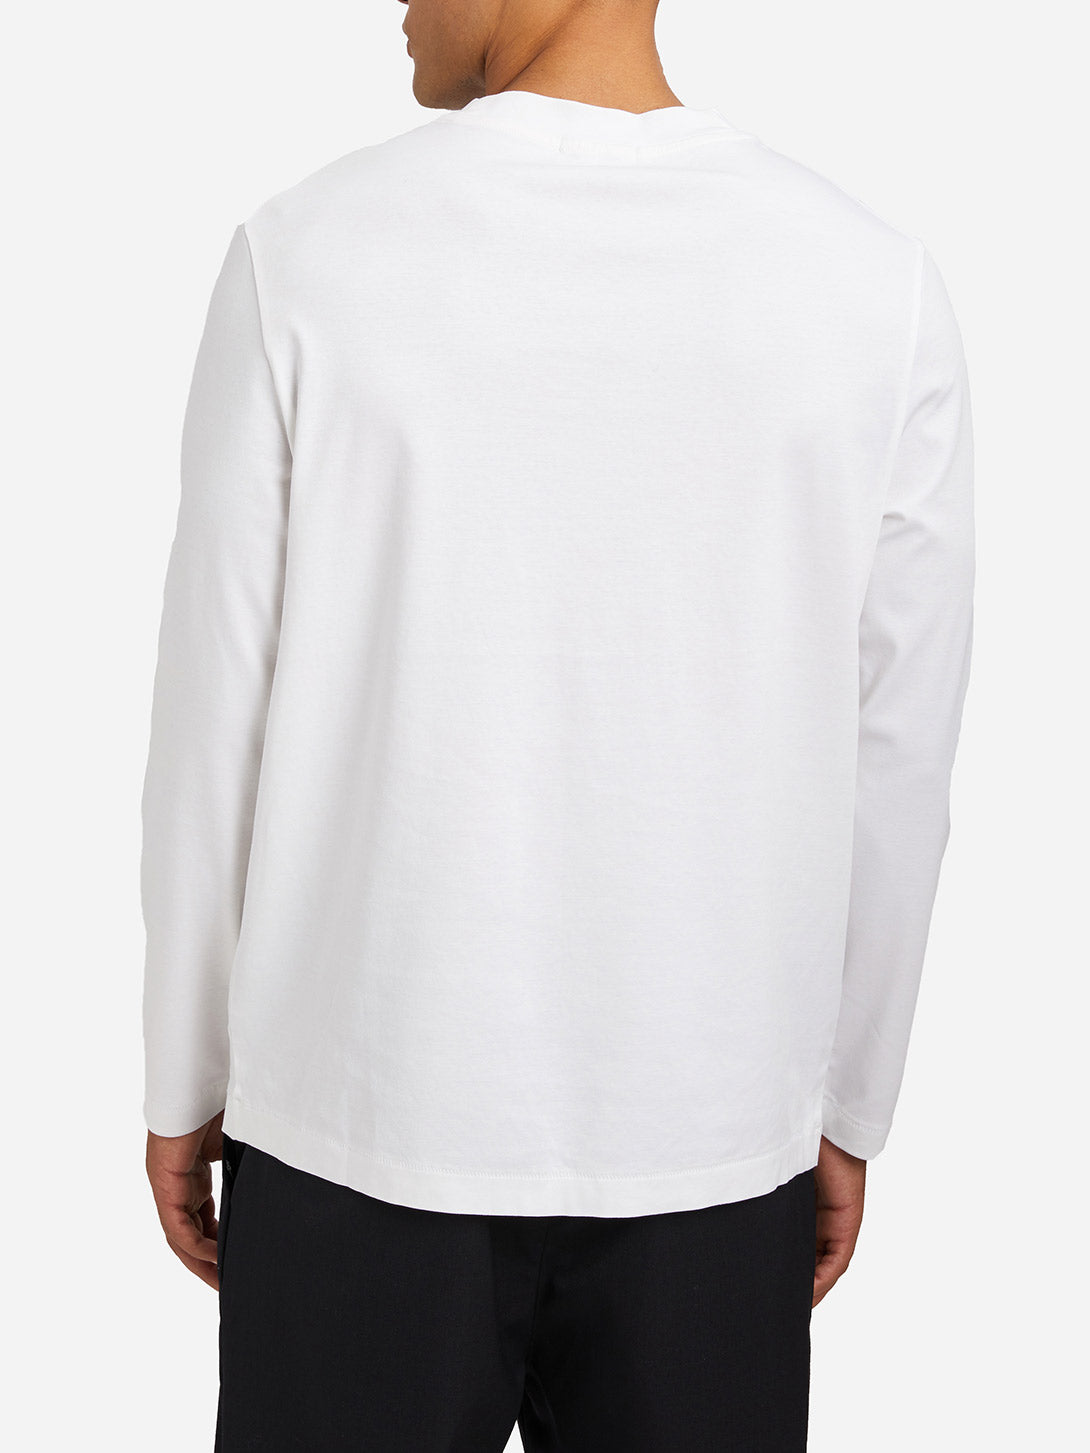 WHITE long sleeve tee mascot tee white ons clothing